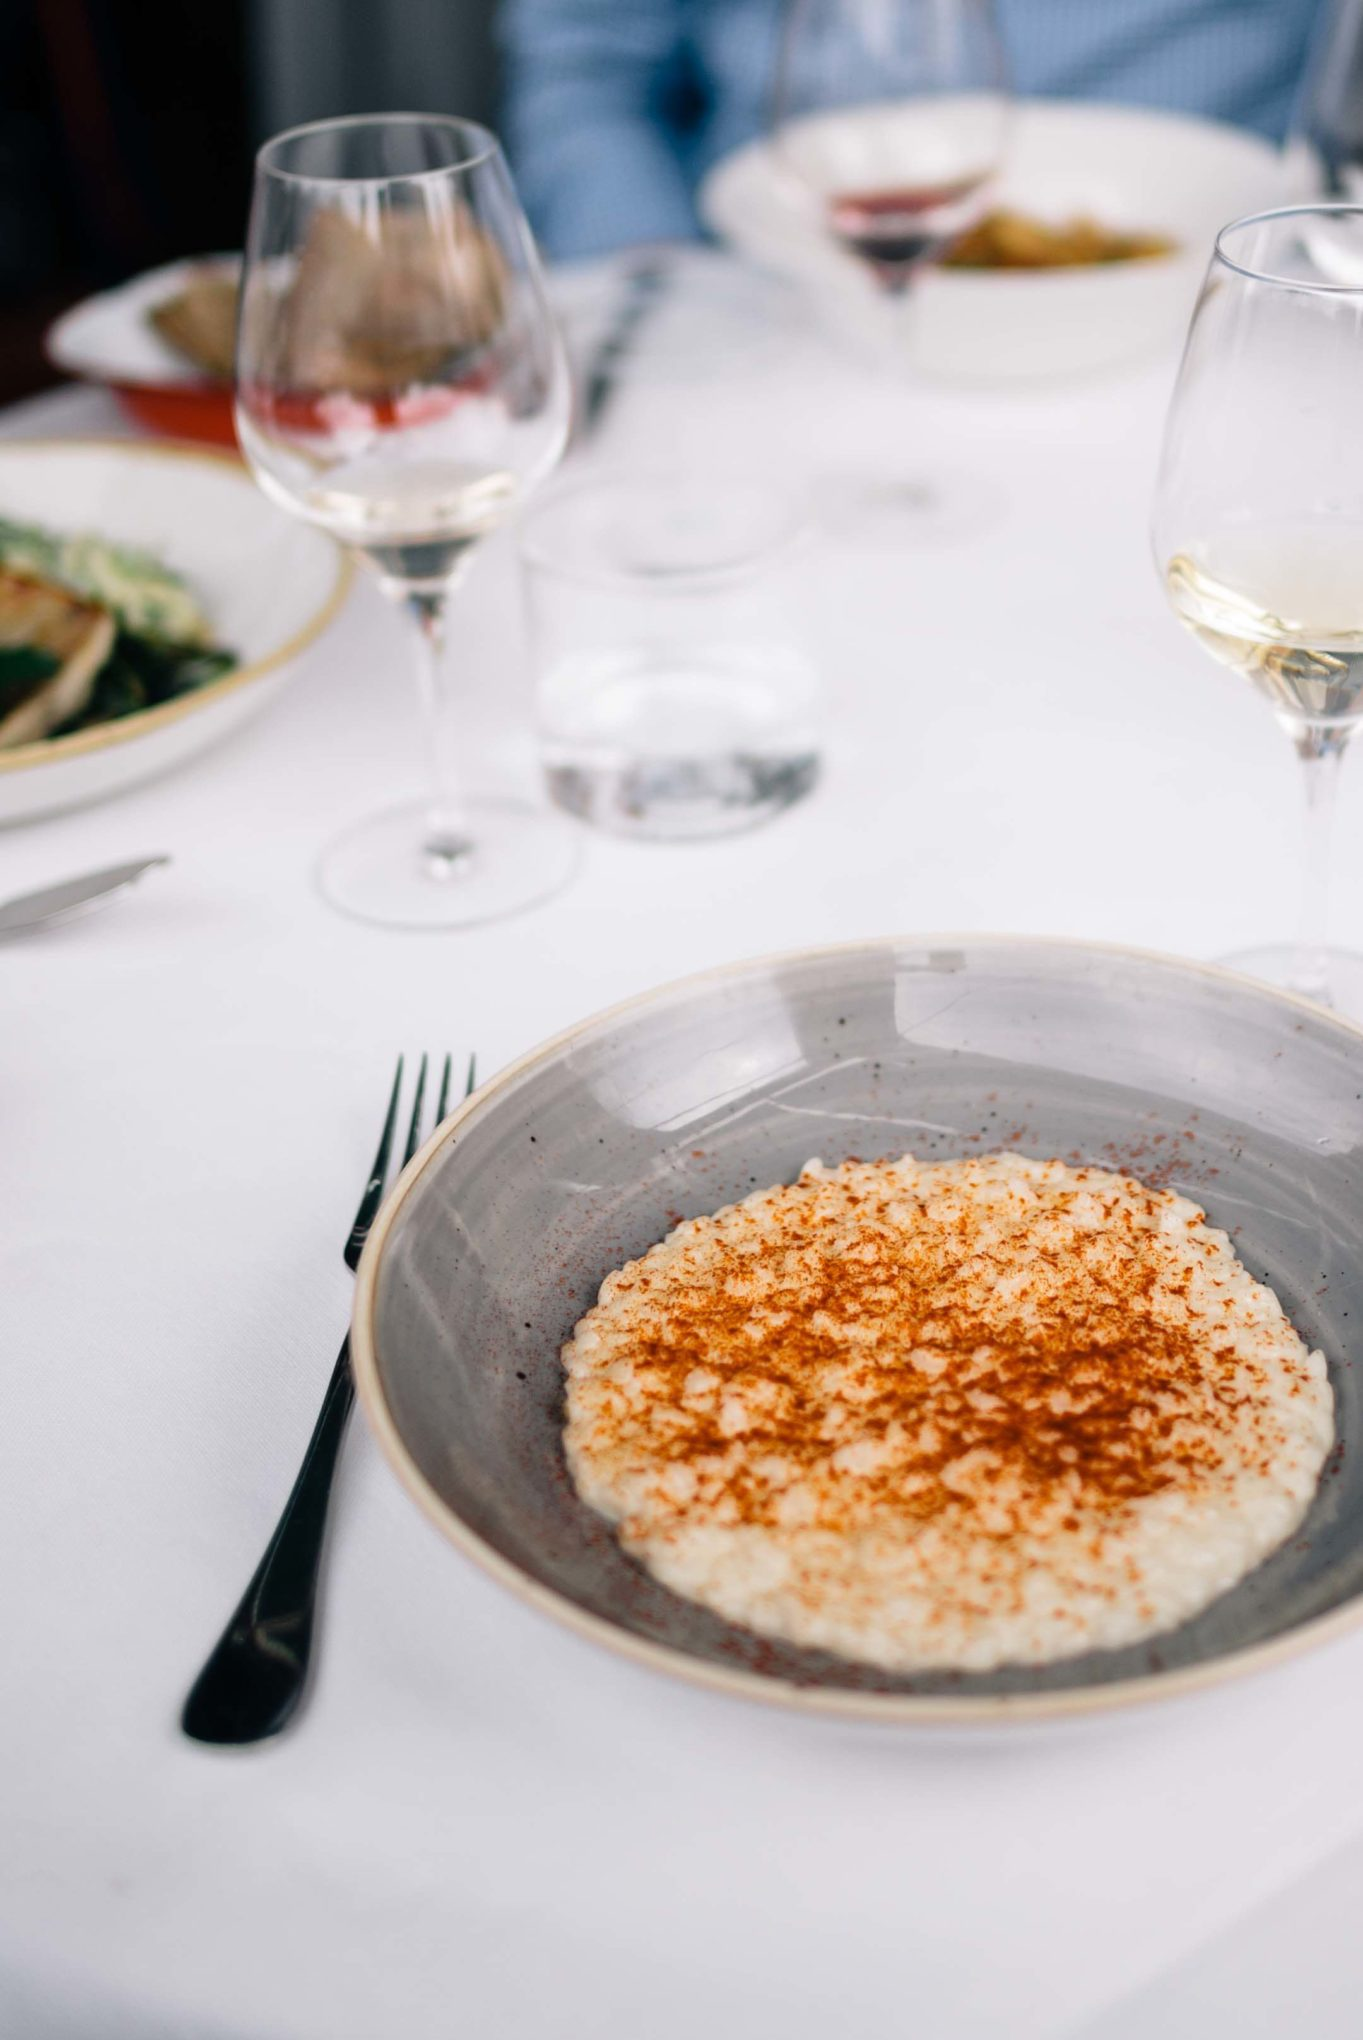 Try the saffron and lemon risotto at Erba Brusca for lunch just outside of Milan, Italy - The Taste SF